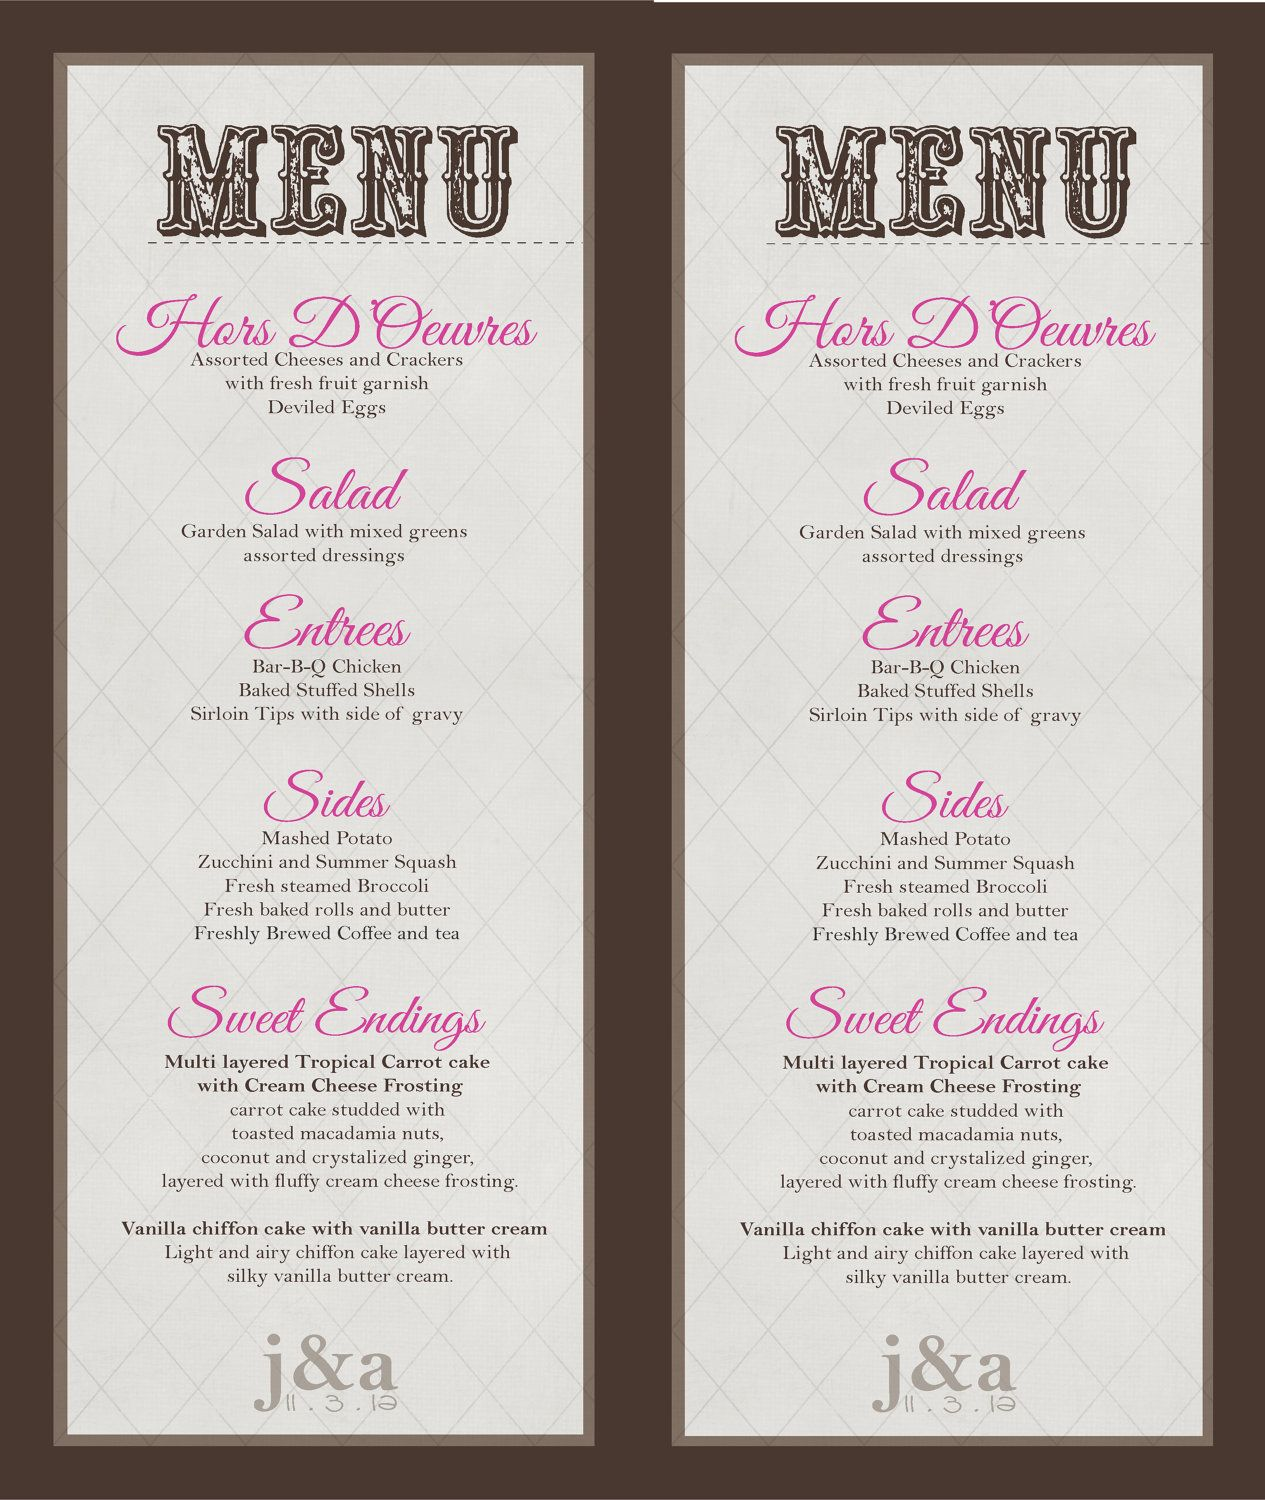 Pin By Dana On Wedding And Party Inspiration Wedding Food Menu Wedding Buffet Menu Wedding Menu